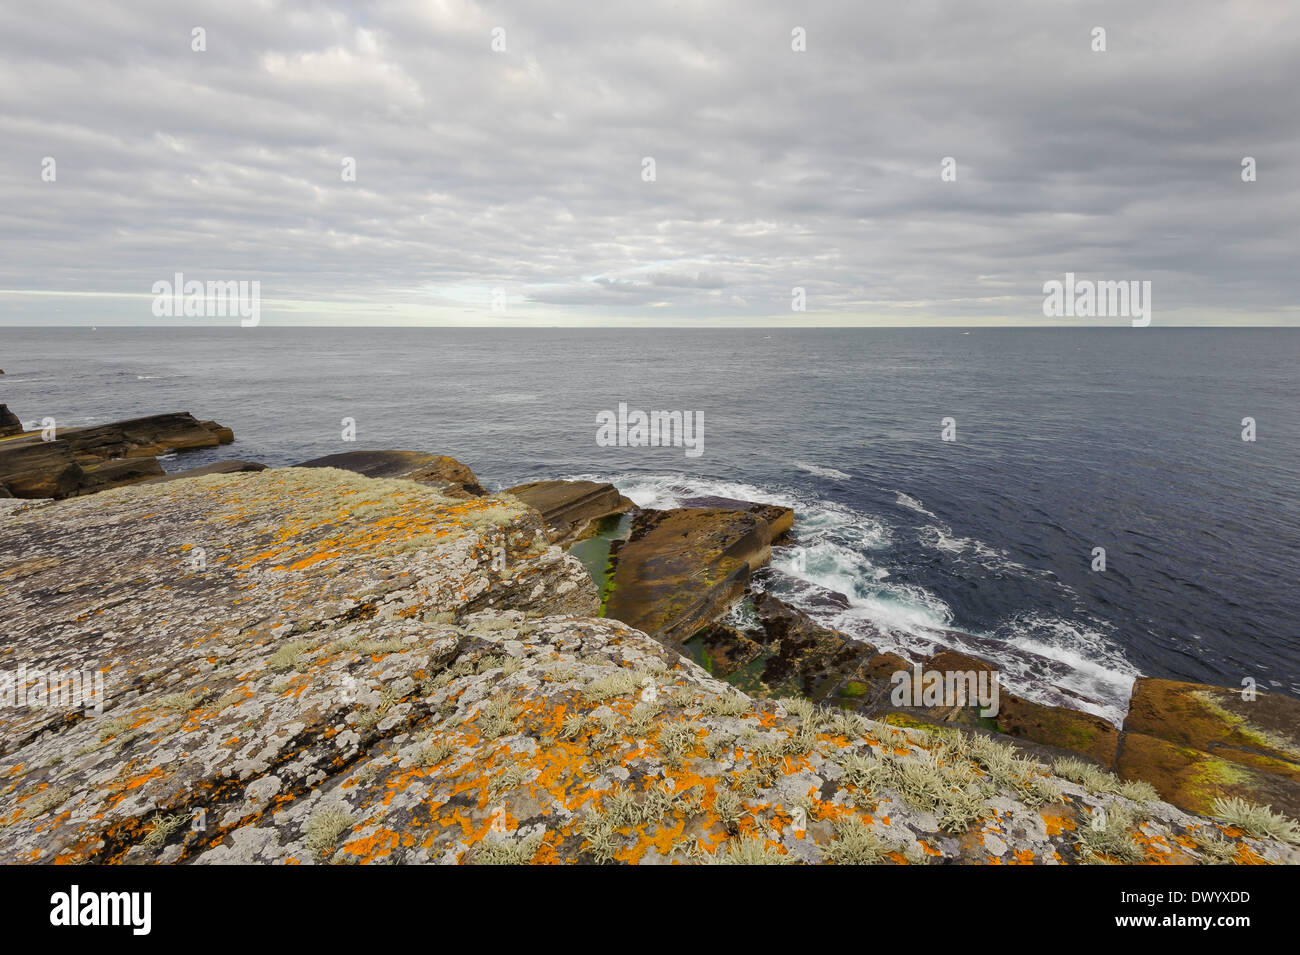 Layered sandstone rocks with lichen on the coast at Wick, Caithness, north Scotland. - Stock Image